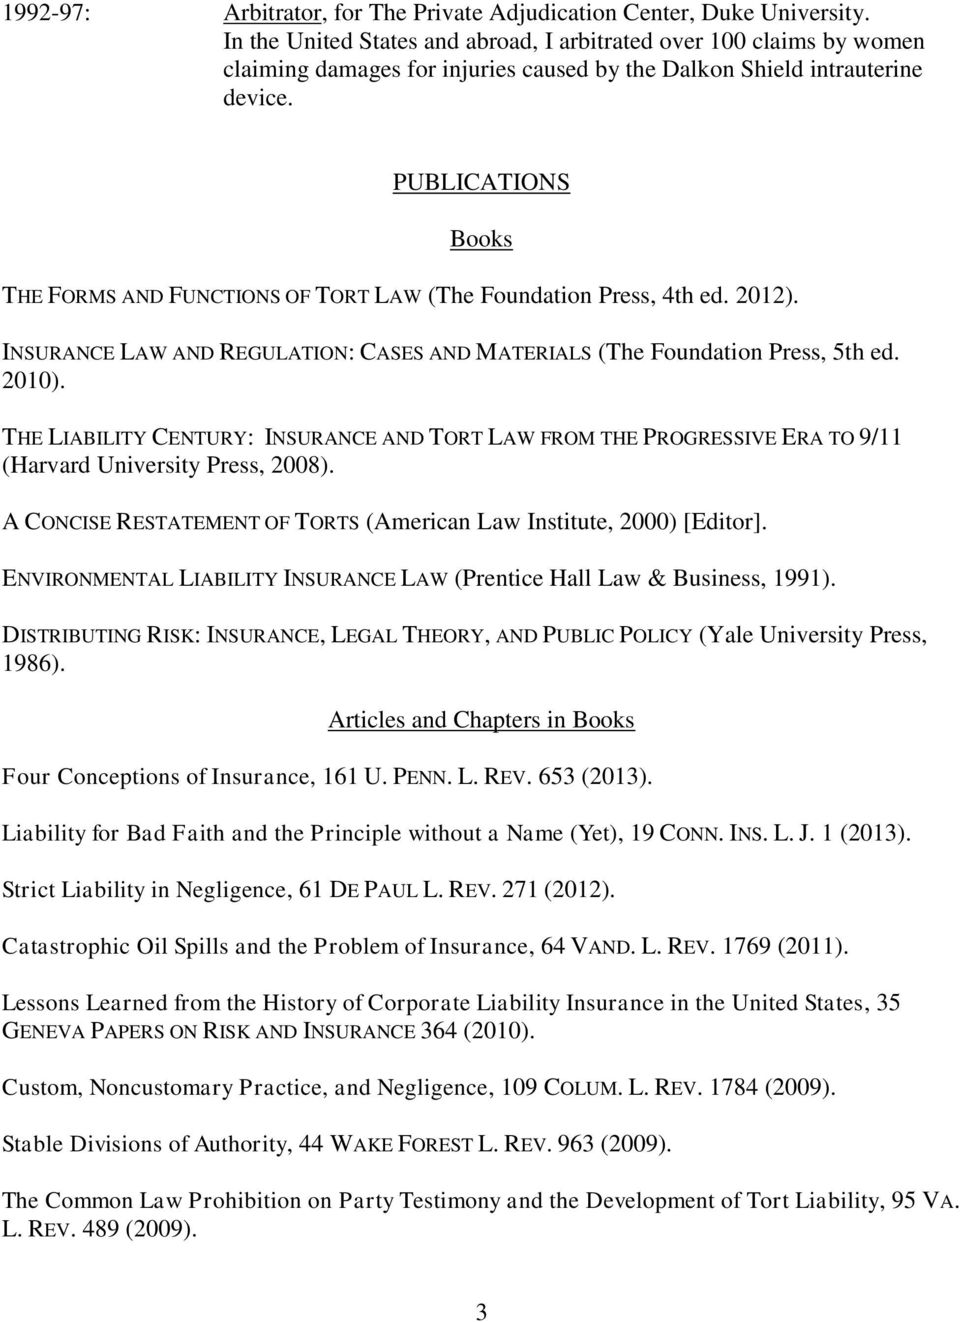 PUBLICATIONS Books THE FORMS AND FUNCTIONS OF TORT LAW (The Foundation Press, 4th ed. 2012). INSURANCE LAW AND REGULATION: CASES AND MATERIALS (The Foundation Press, 5th ed. 2010).